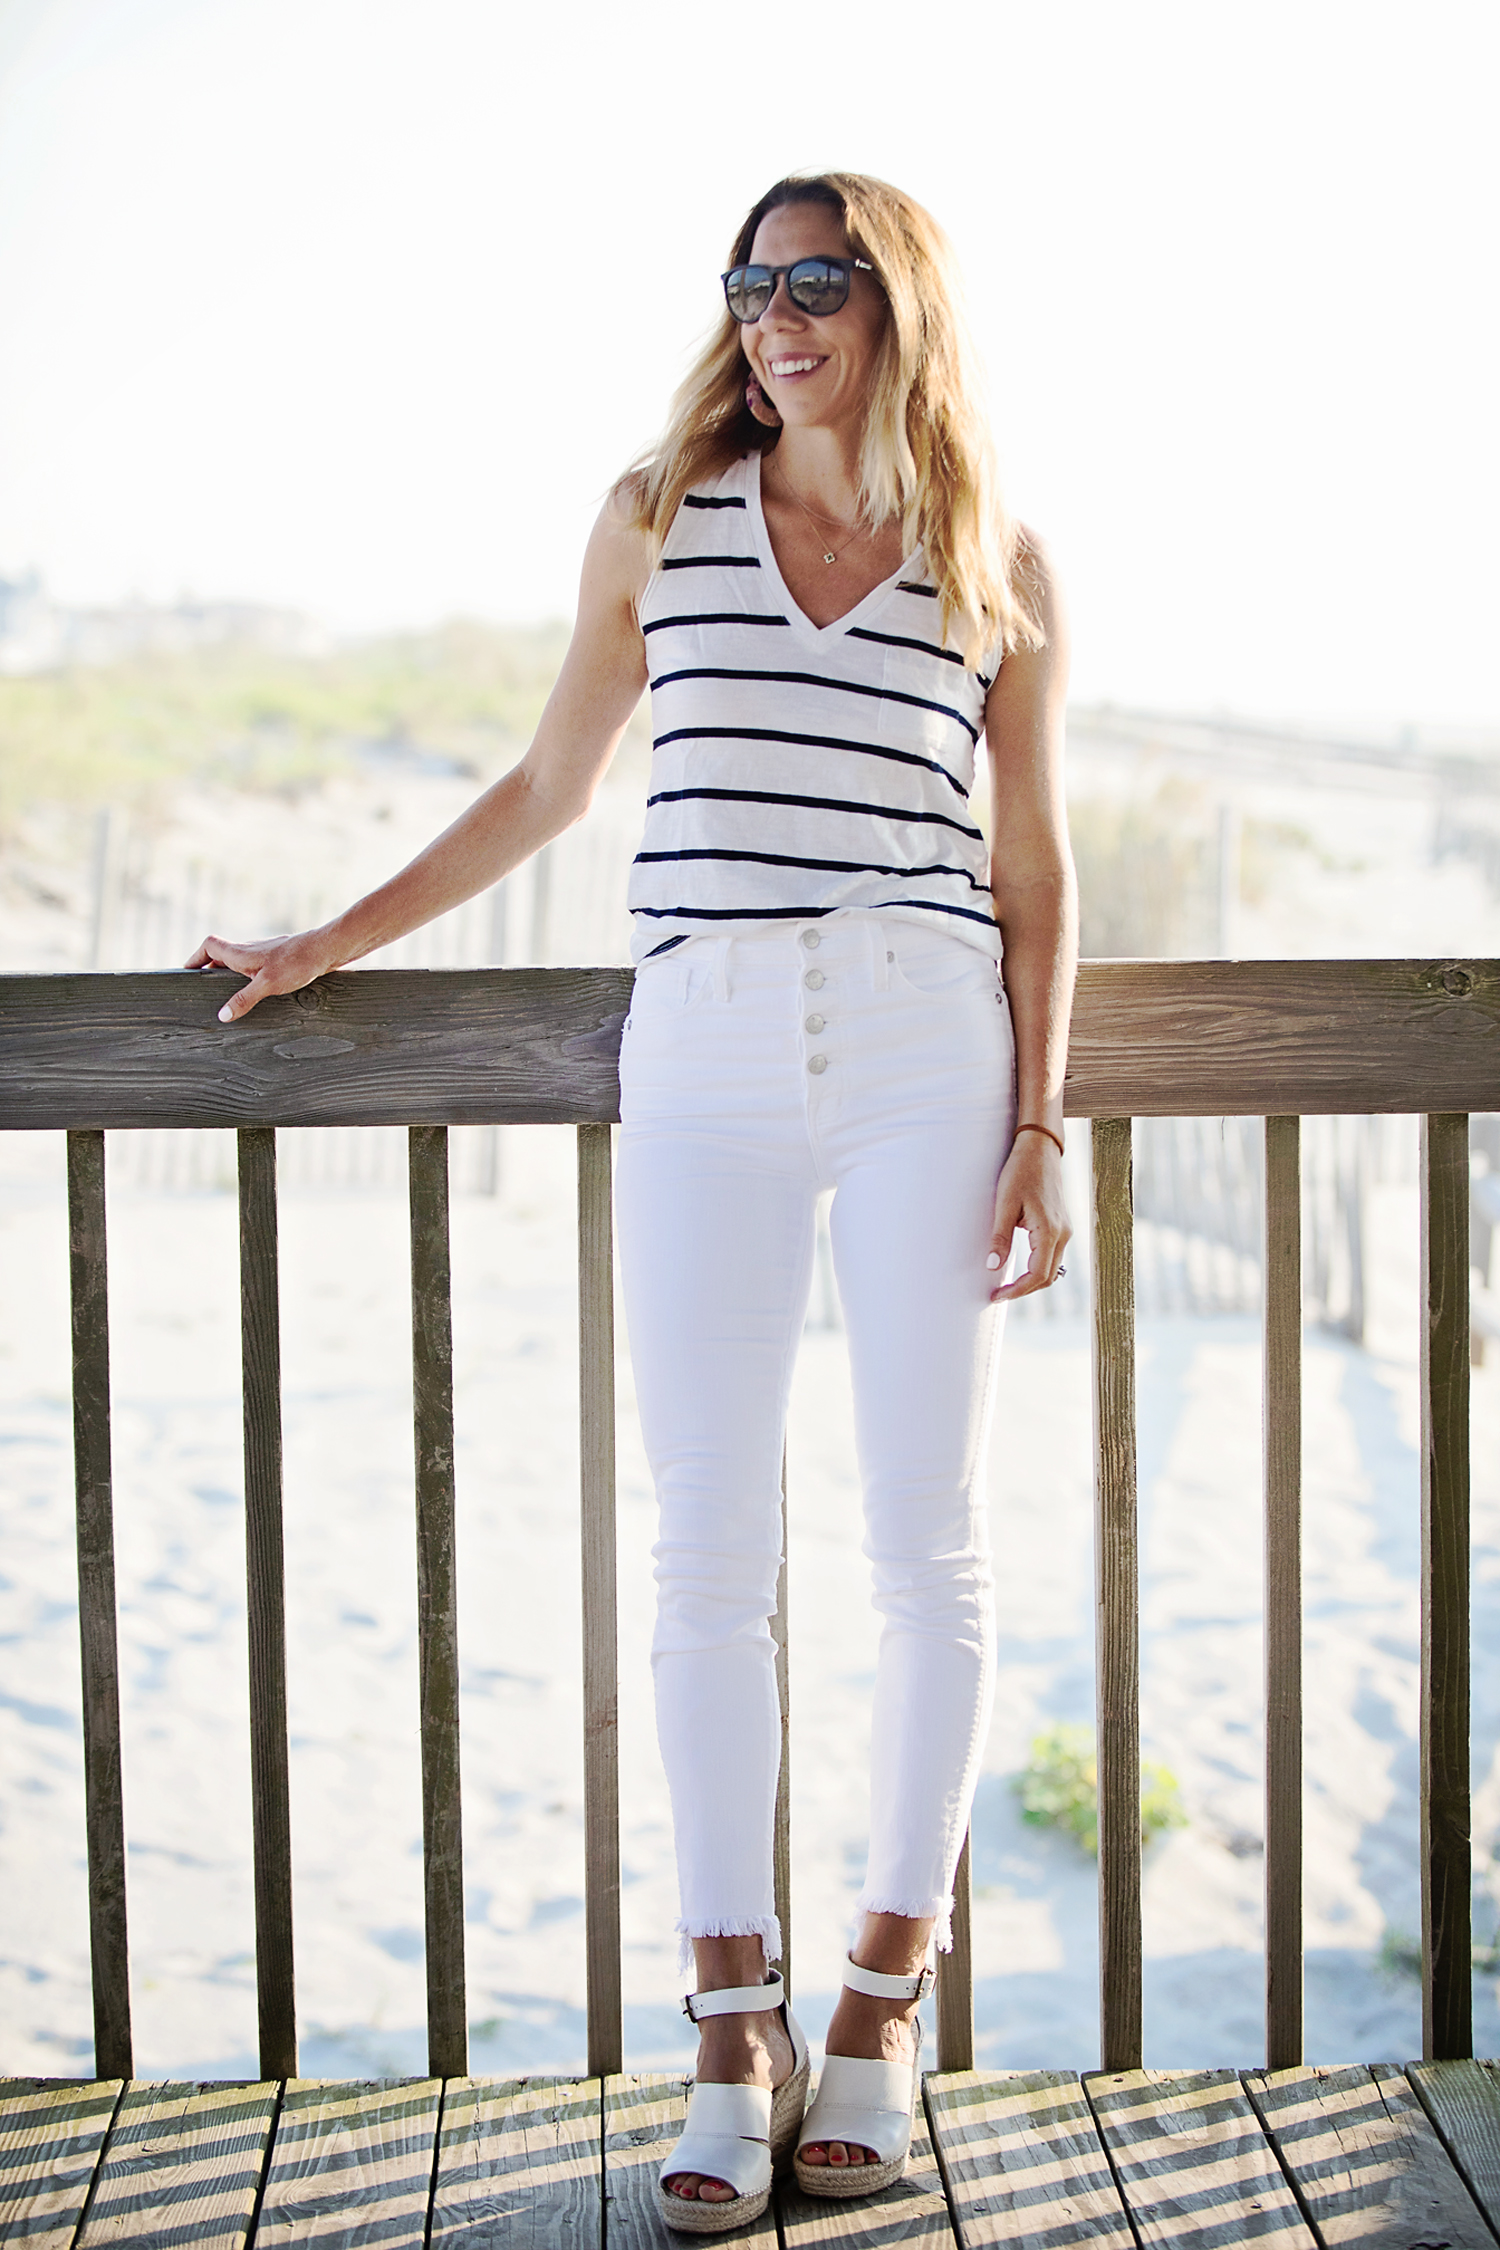 The motherchic wearing madewell jeans and whisper tank